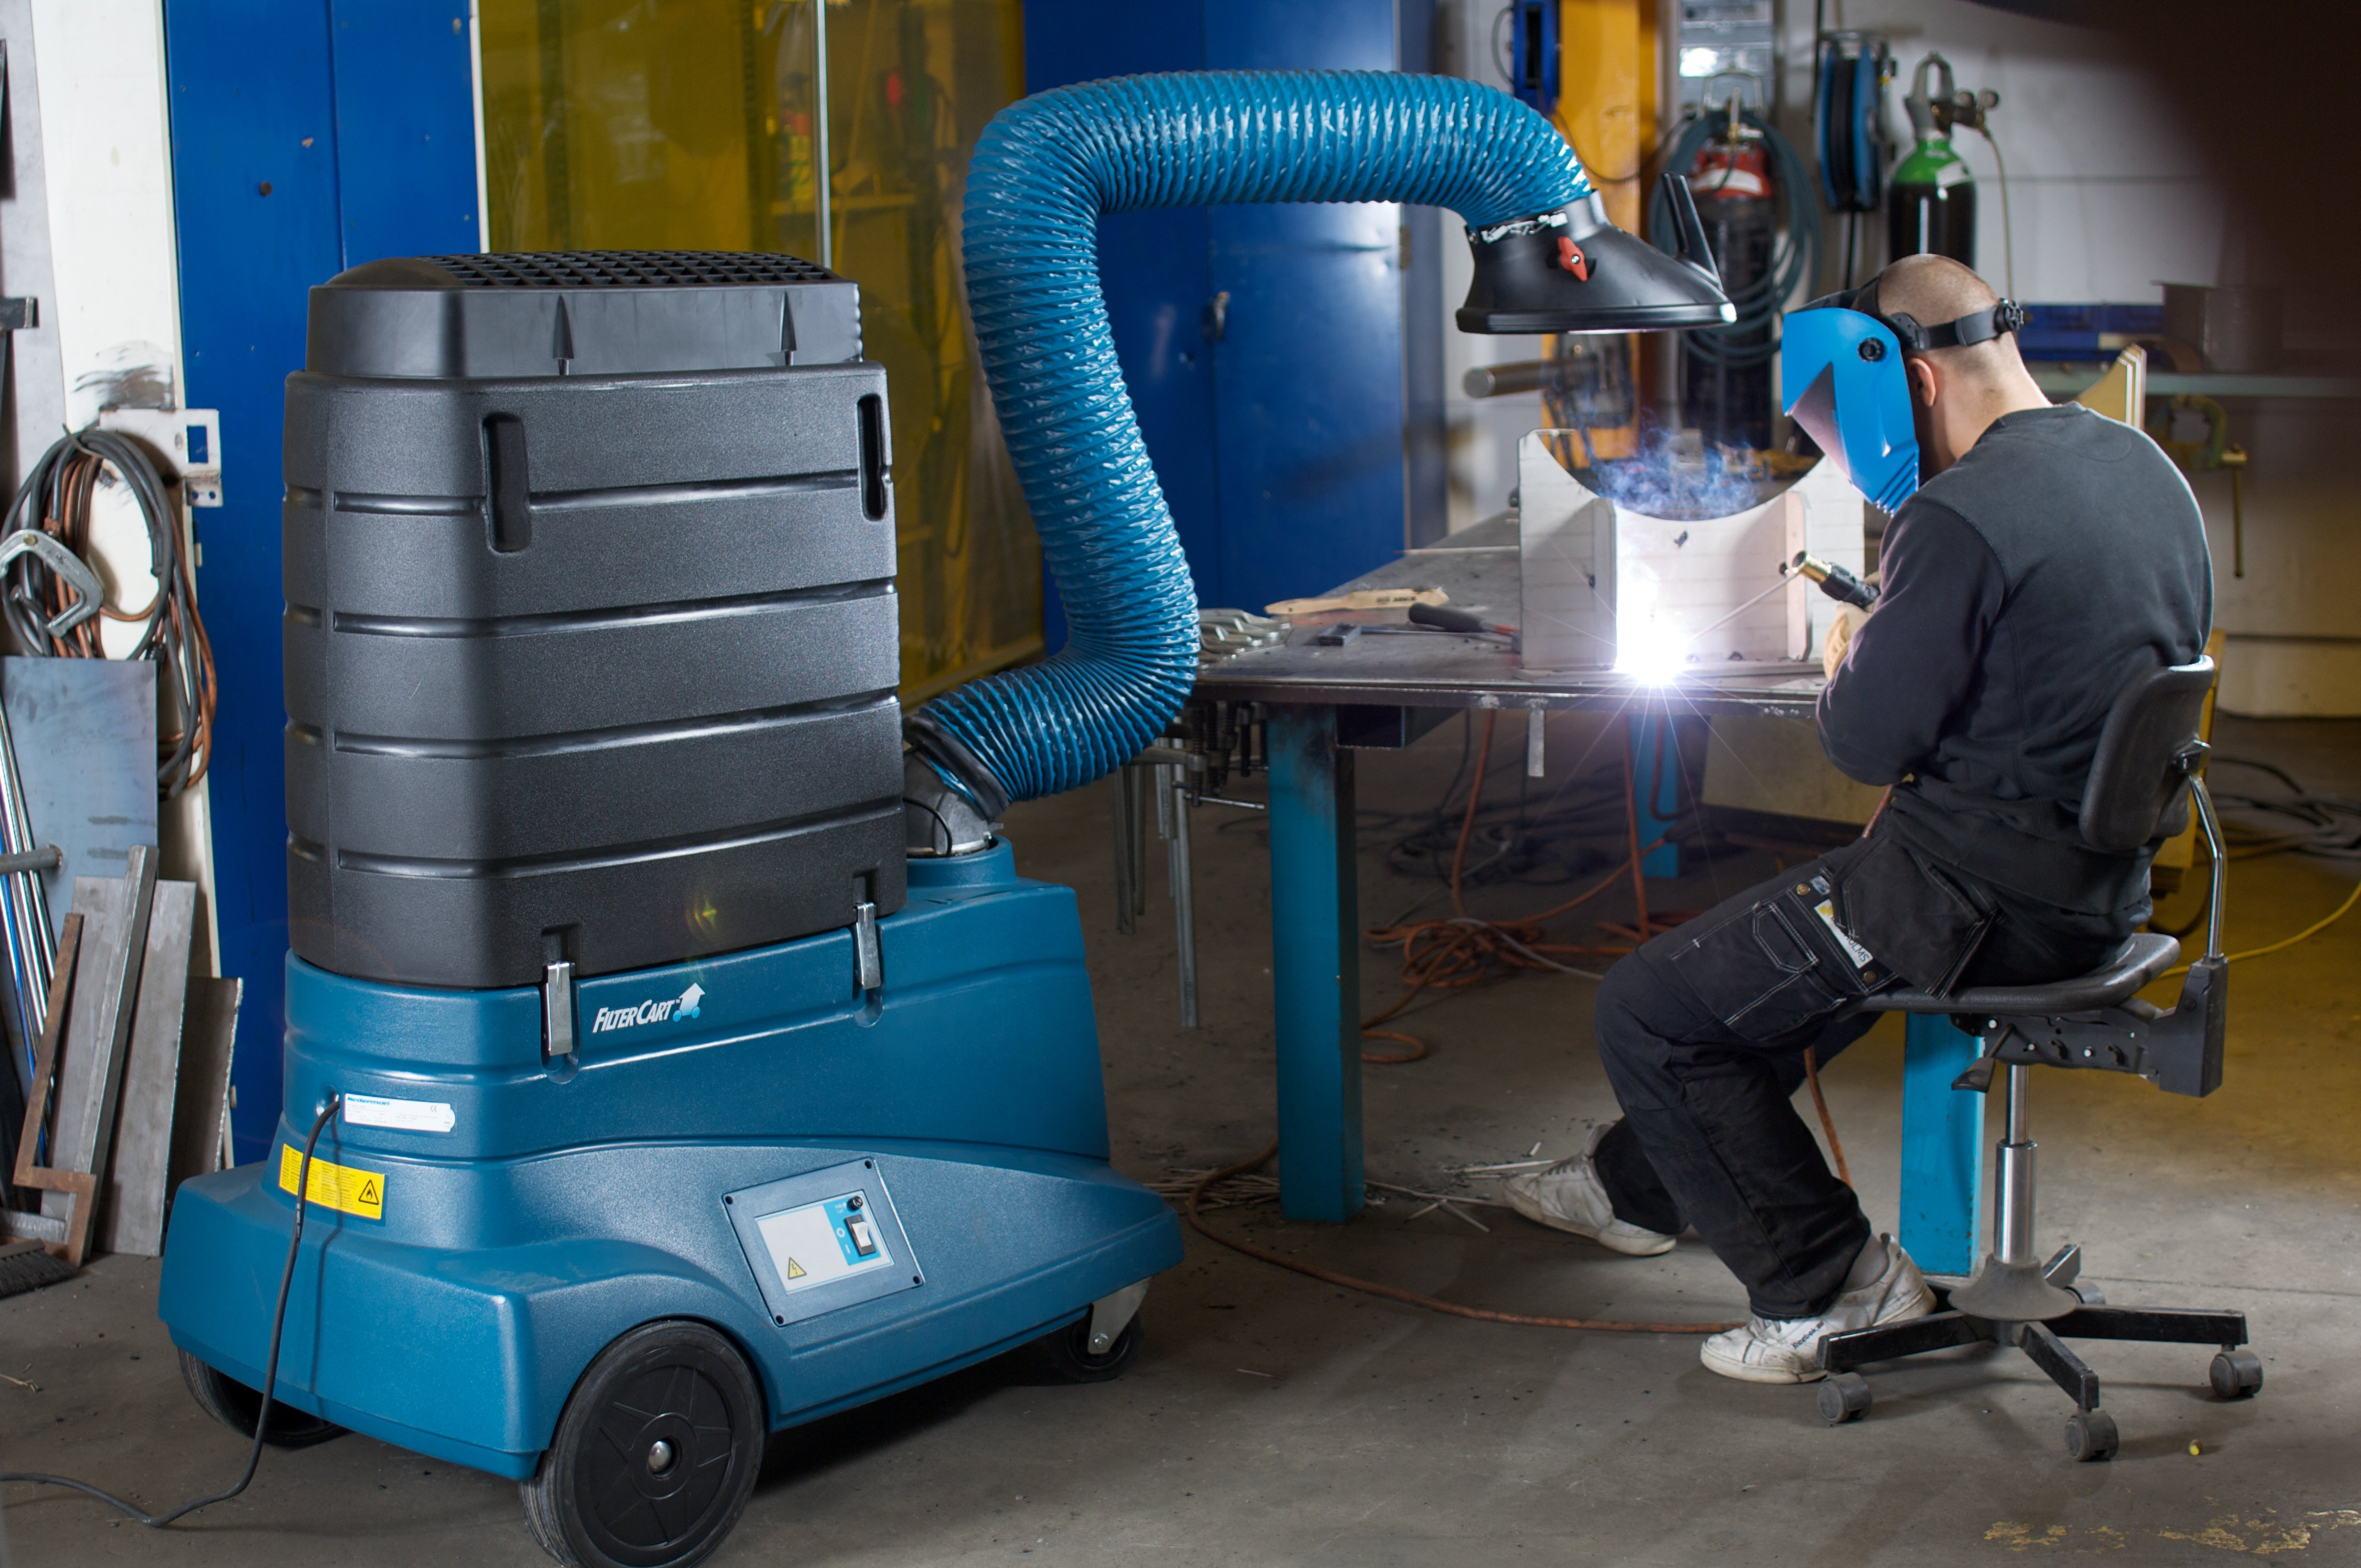 Welding Fume Extraction Systems : Filtercart w nederman